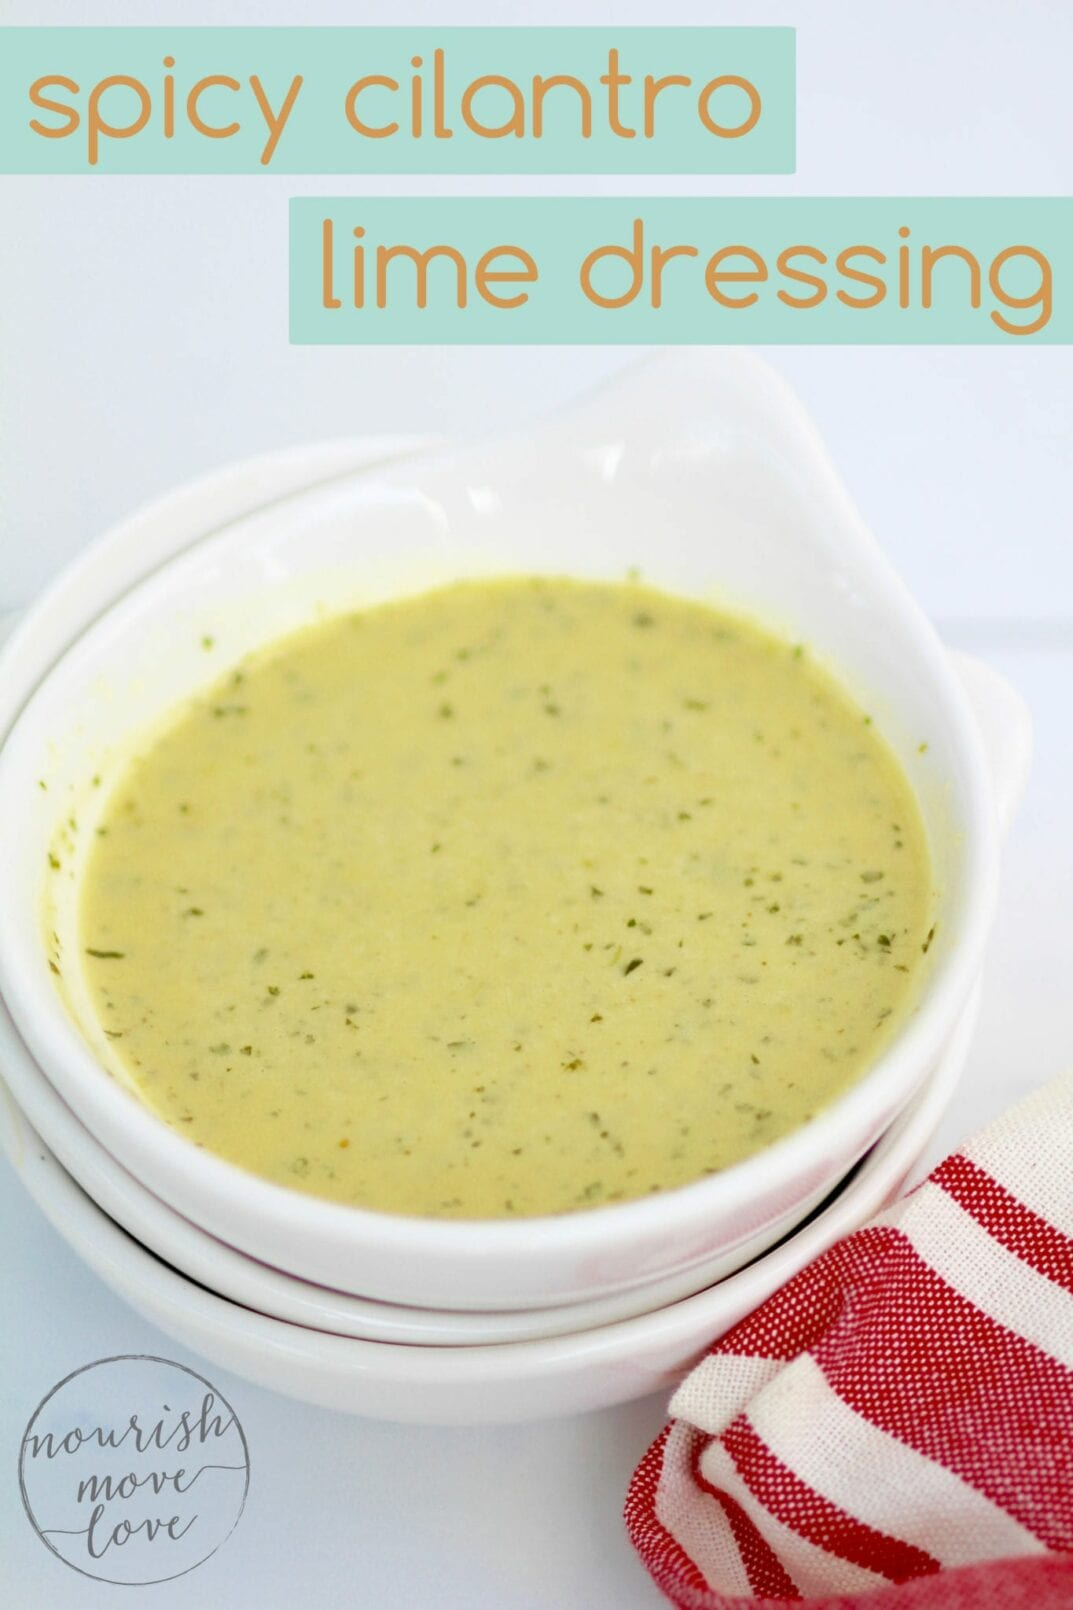 spicy cilantro-lime dressing | it has a cool, citrusy lime flavor paired with a little cayenne kick. | www.nourishmovelove.com